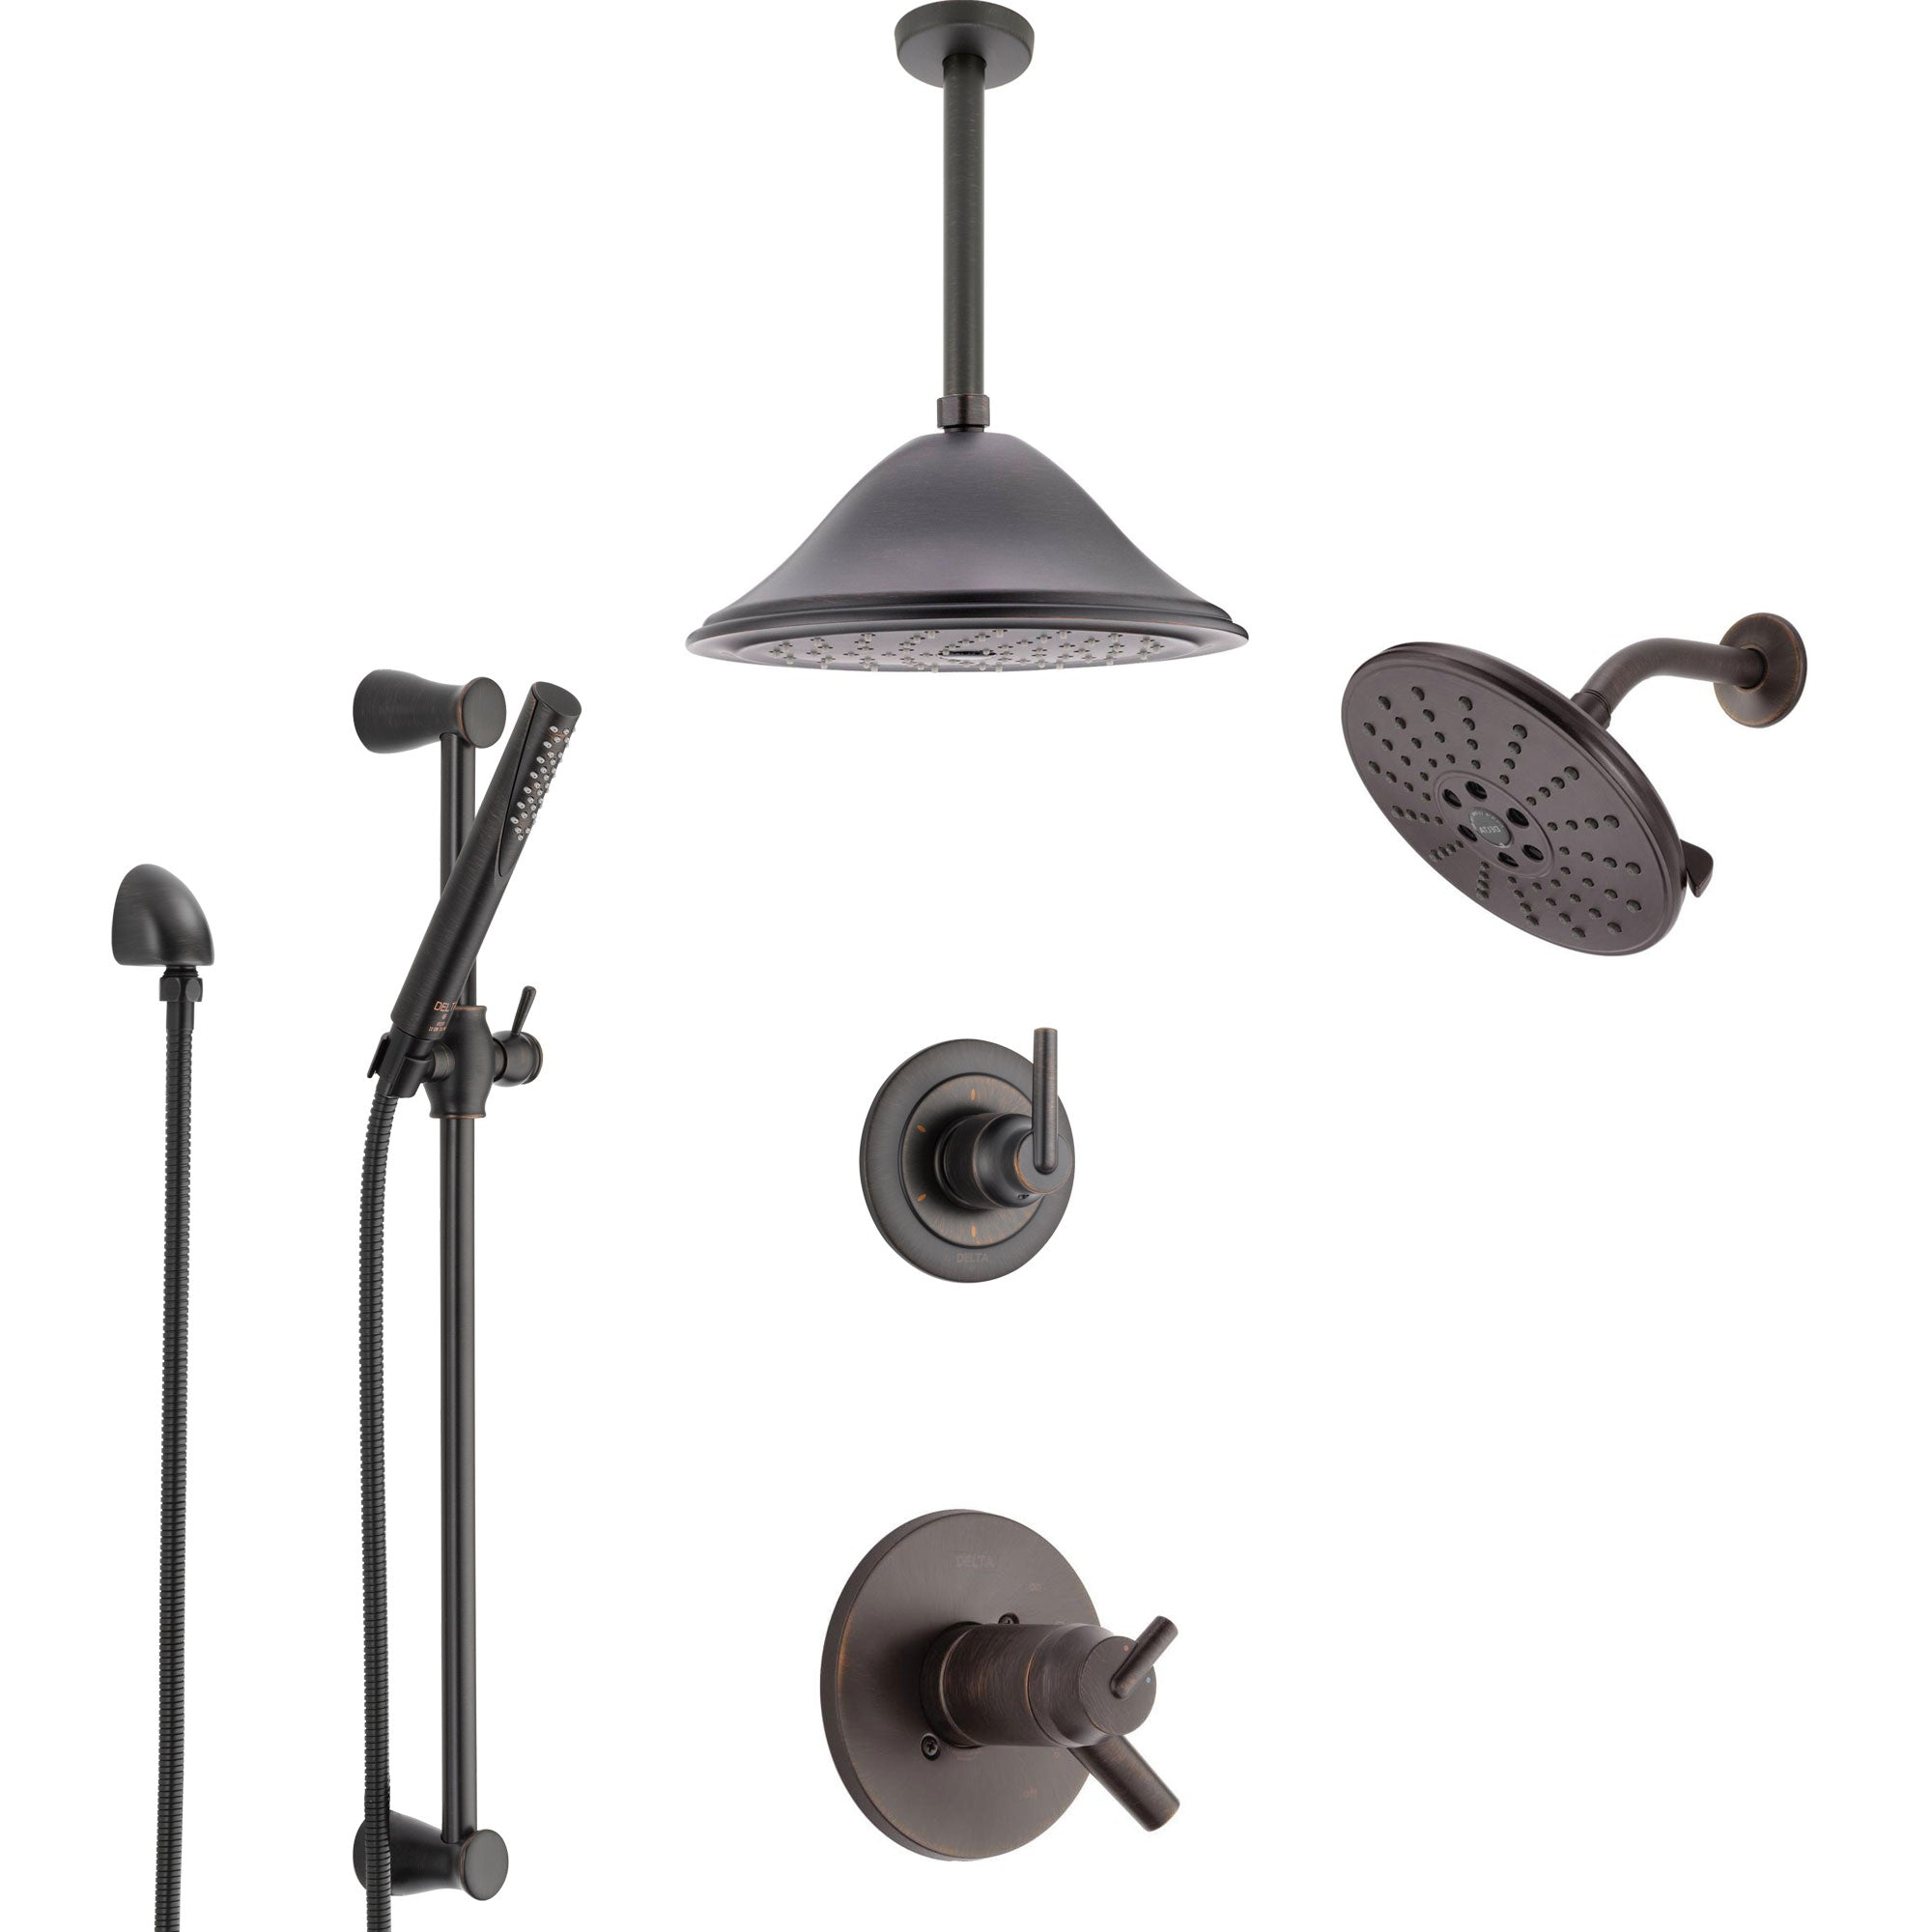 Delta Trinsic Venetian Bronze Shower System with Dual Thermostatic Control, Diverter, Showerhead, Ceiling Showerhead, and Hand Shower SS17T2591RB5